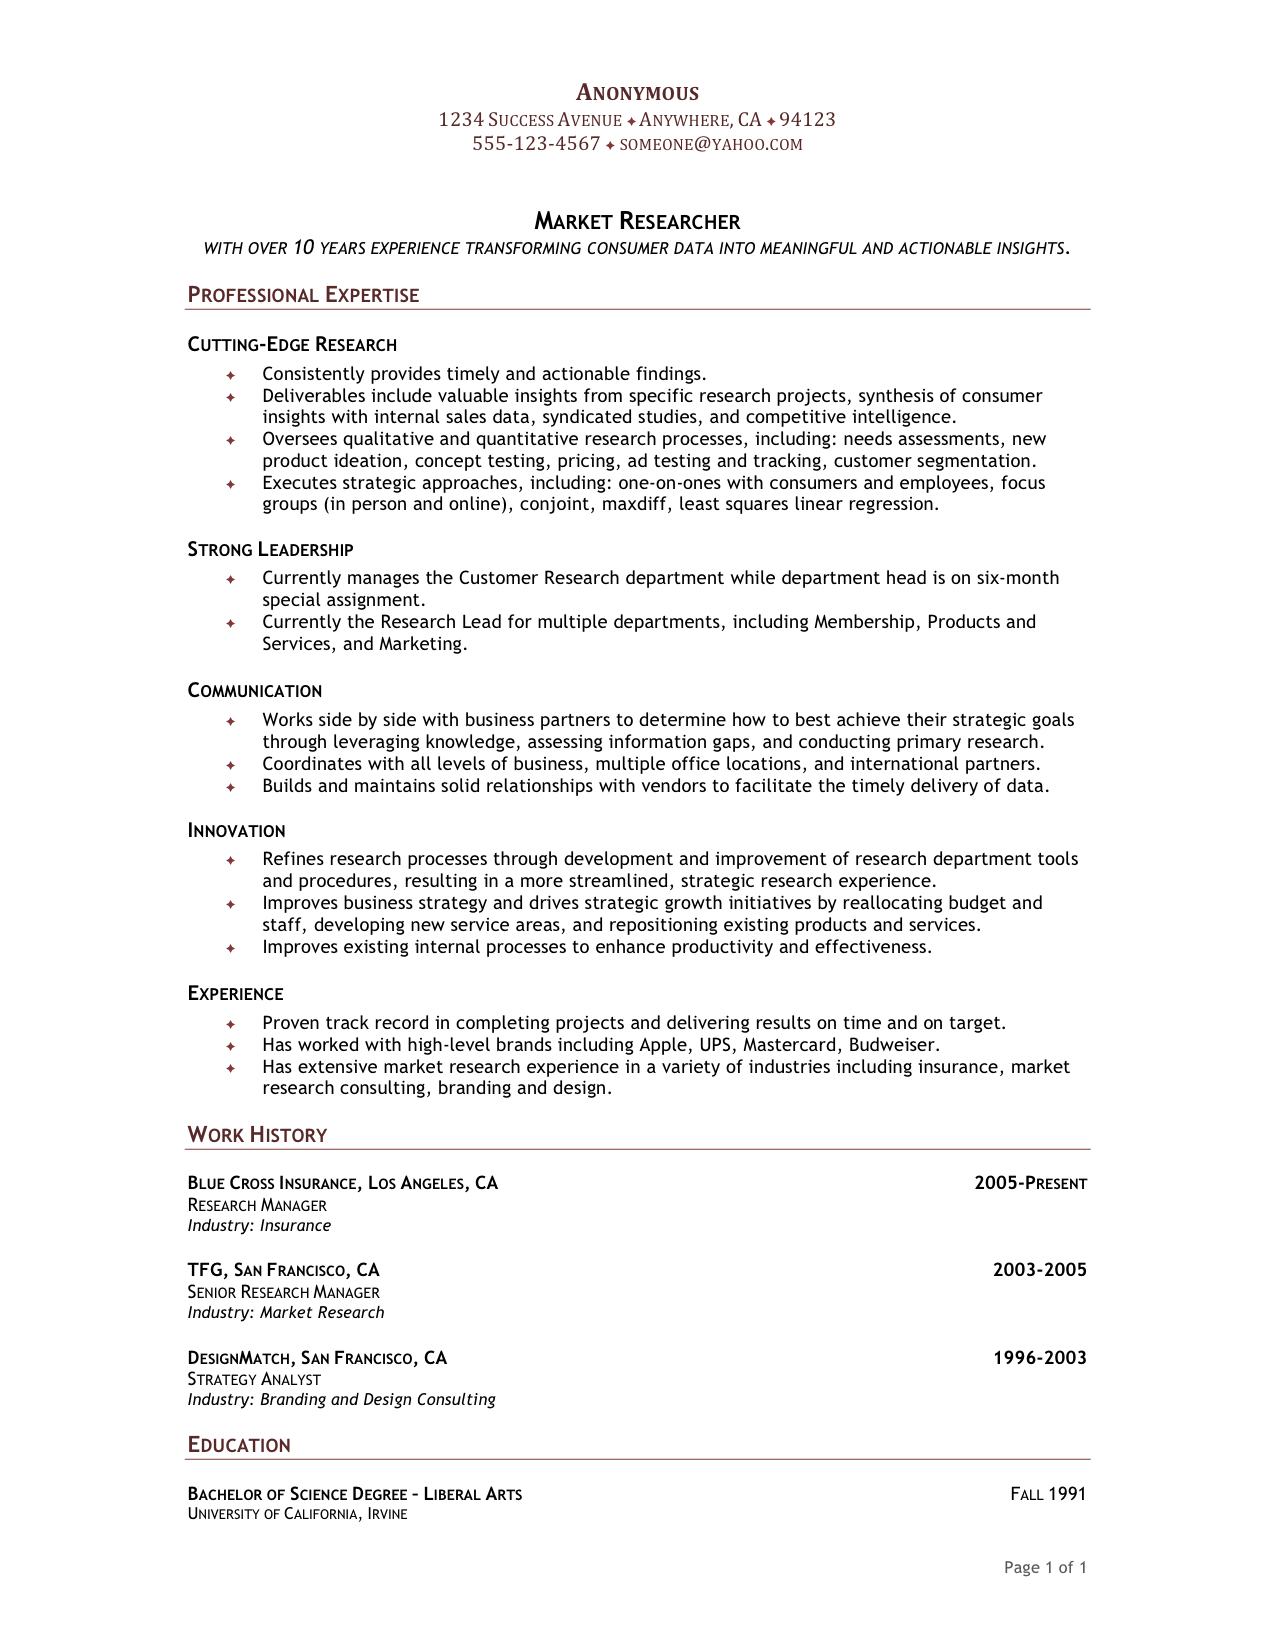 What Is Functional Resume Resume Samples Chronological Vs Function Resume Formats  Robin .